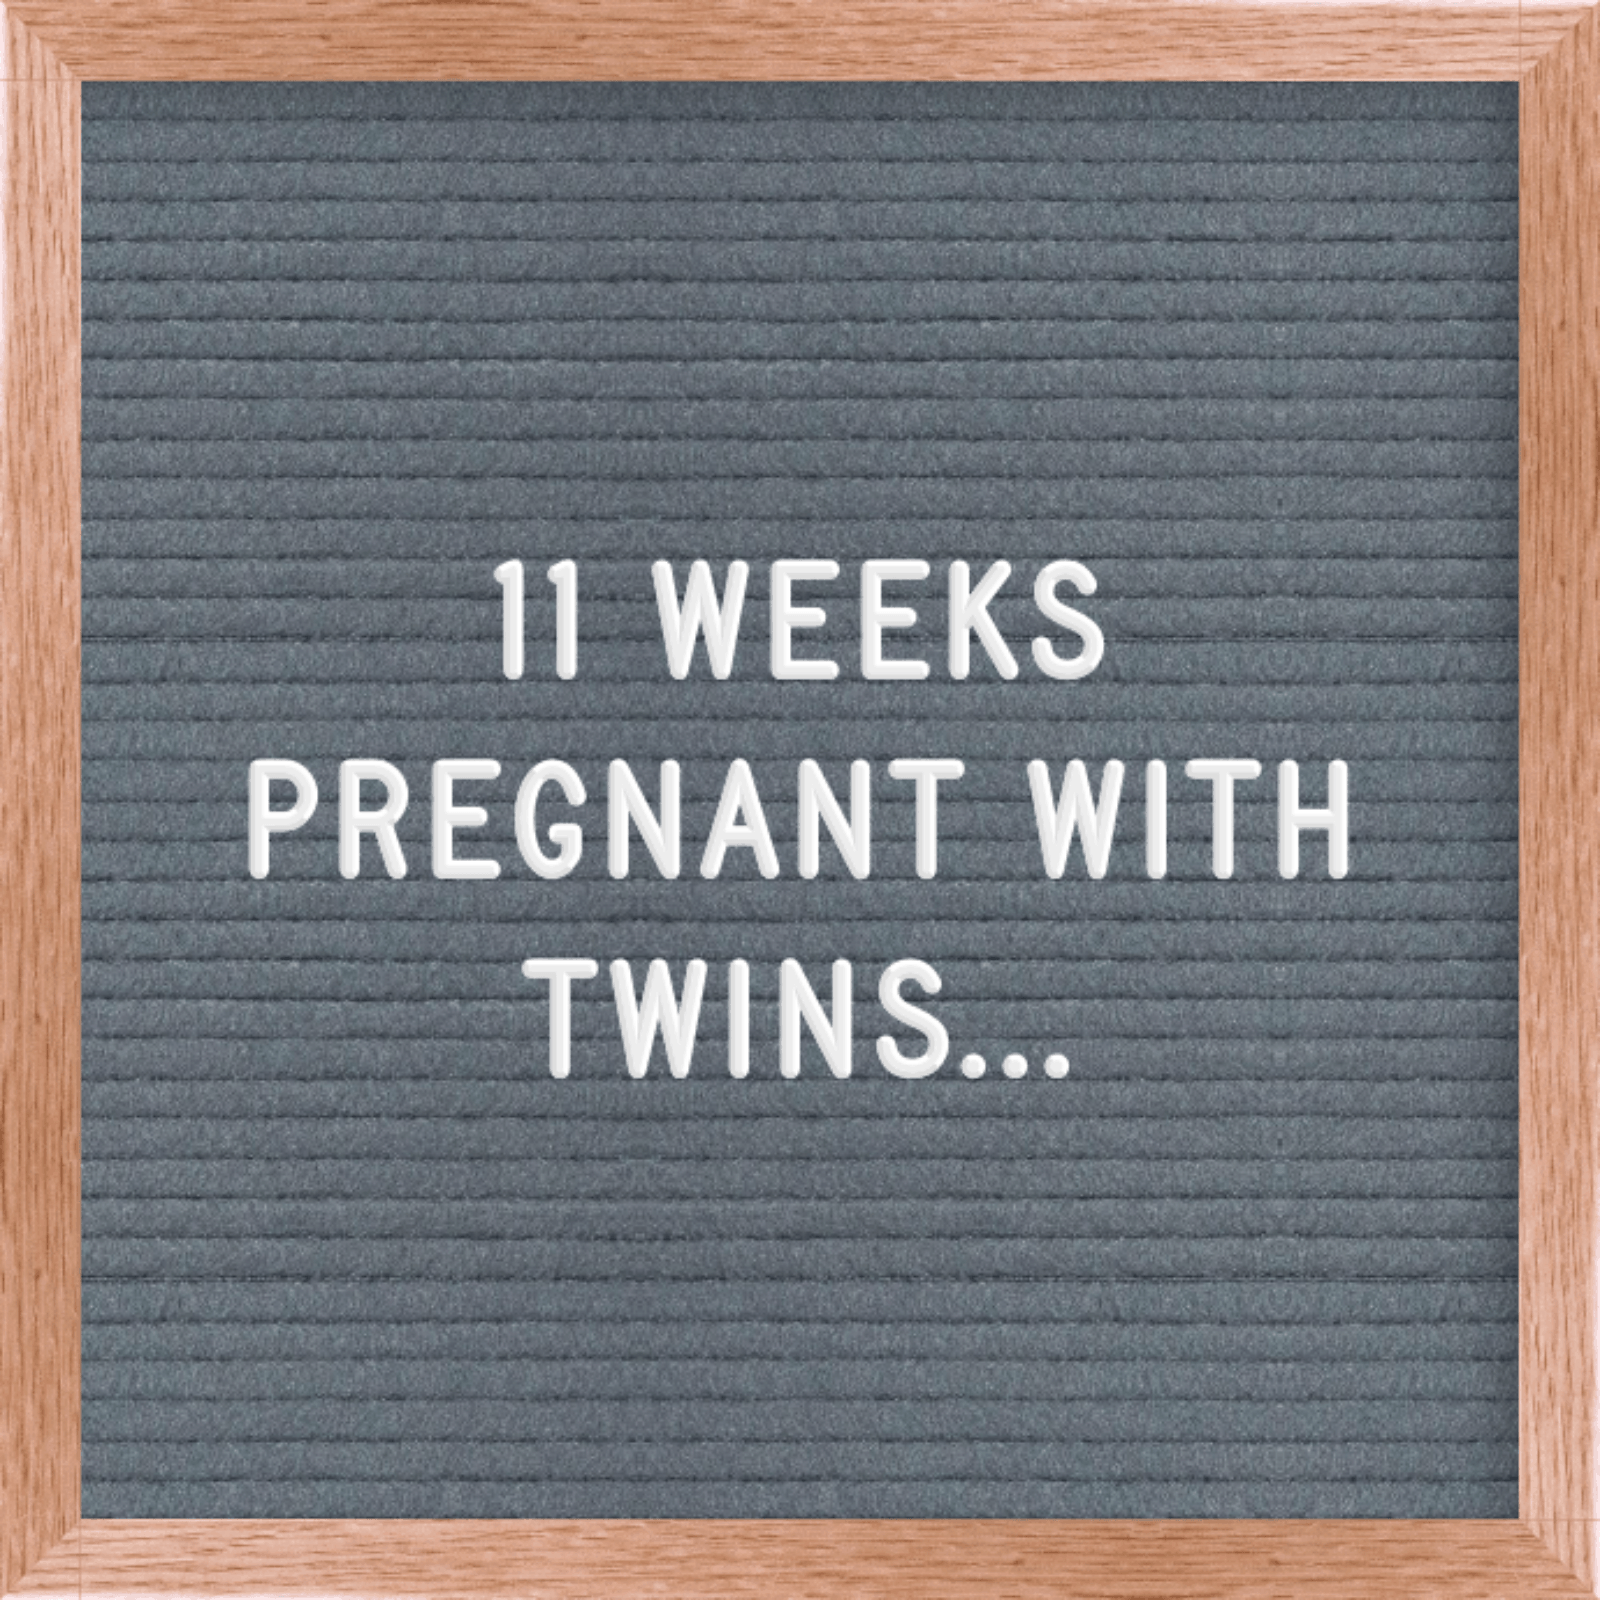 11 Weeks Pregnant with Twins: Tips, Advice & How to Prep